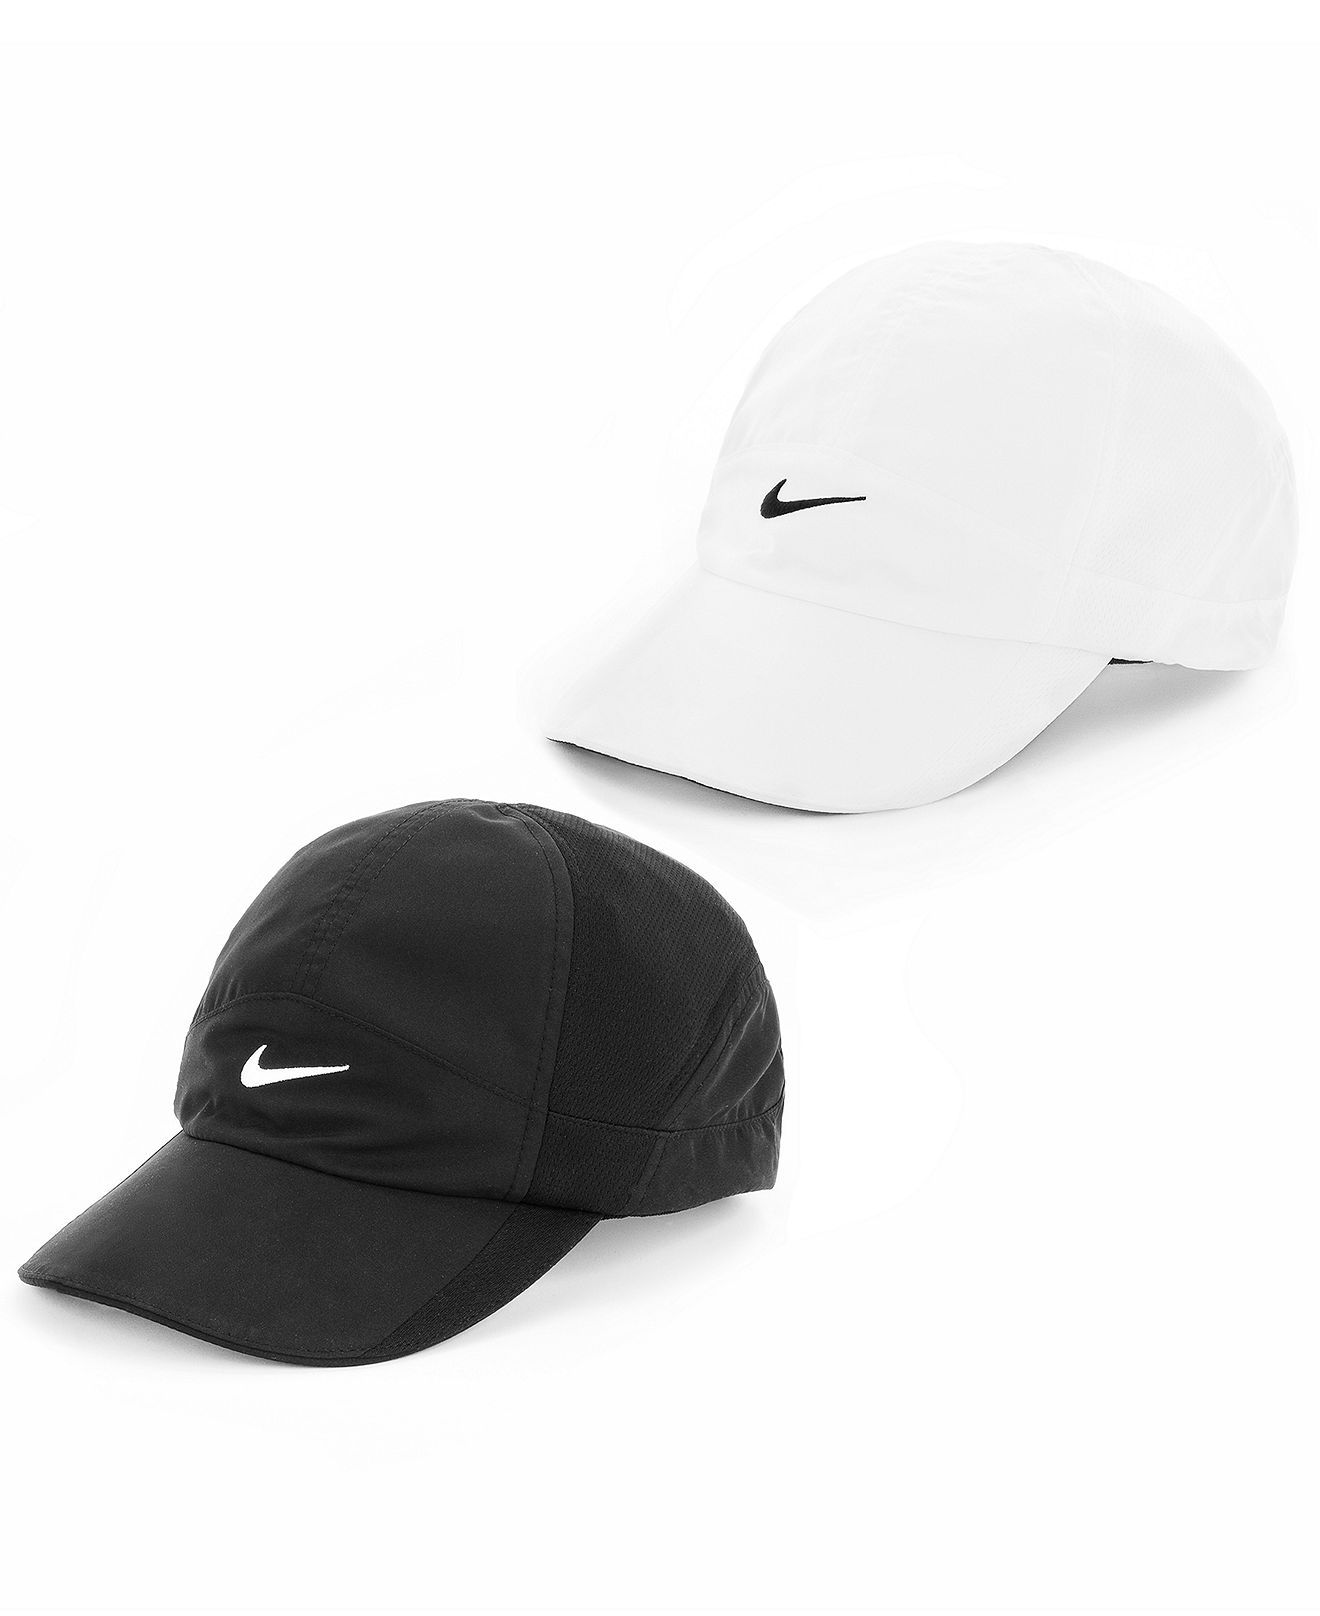 the latest b6caa 8fb63 Nike Hat, Featherlight Dri-FIT Sport Cap - Plus Size Activewear - Plus  Sizes - Macys